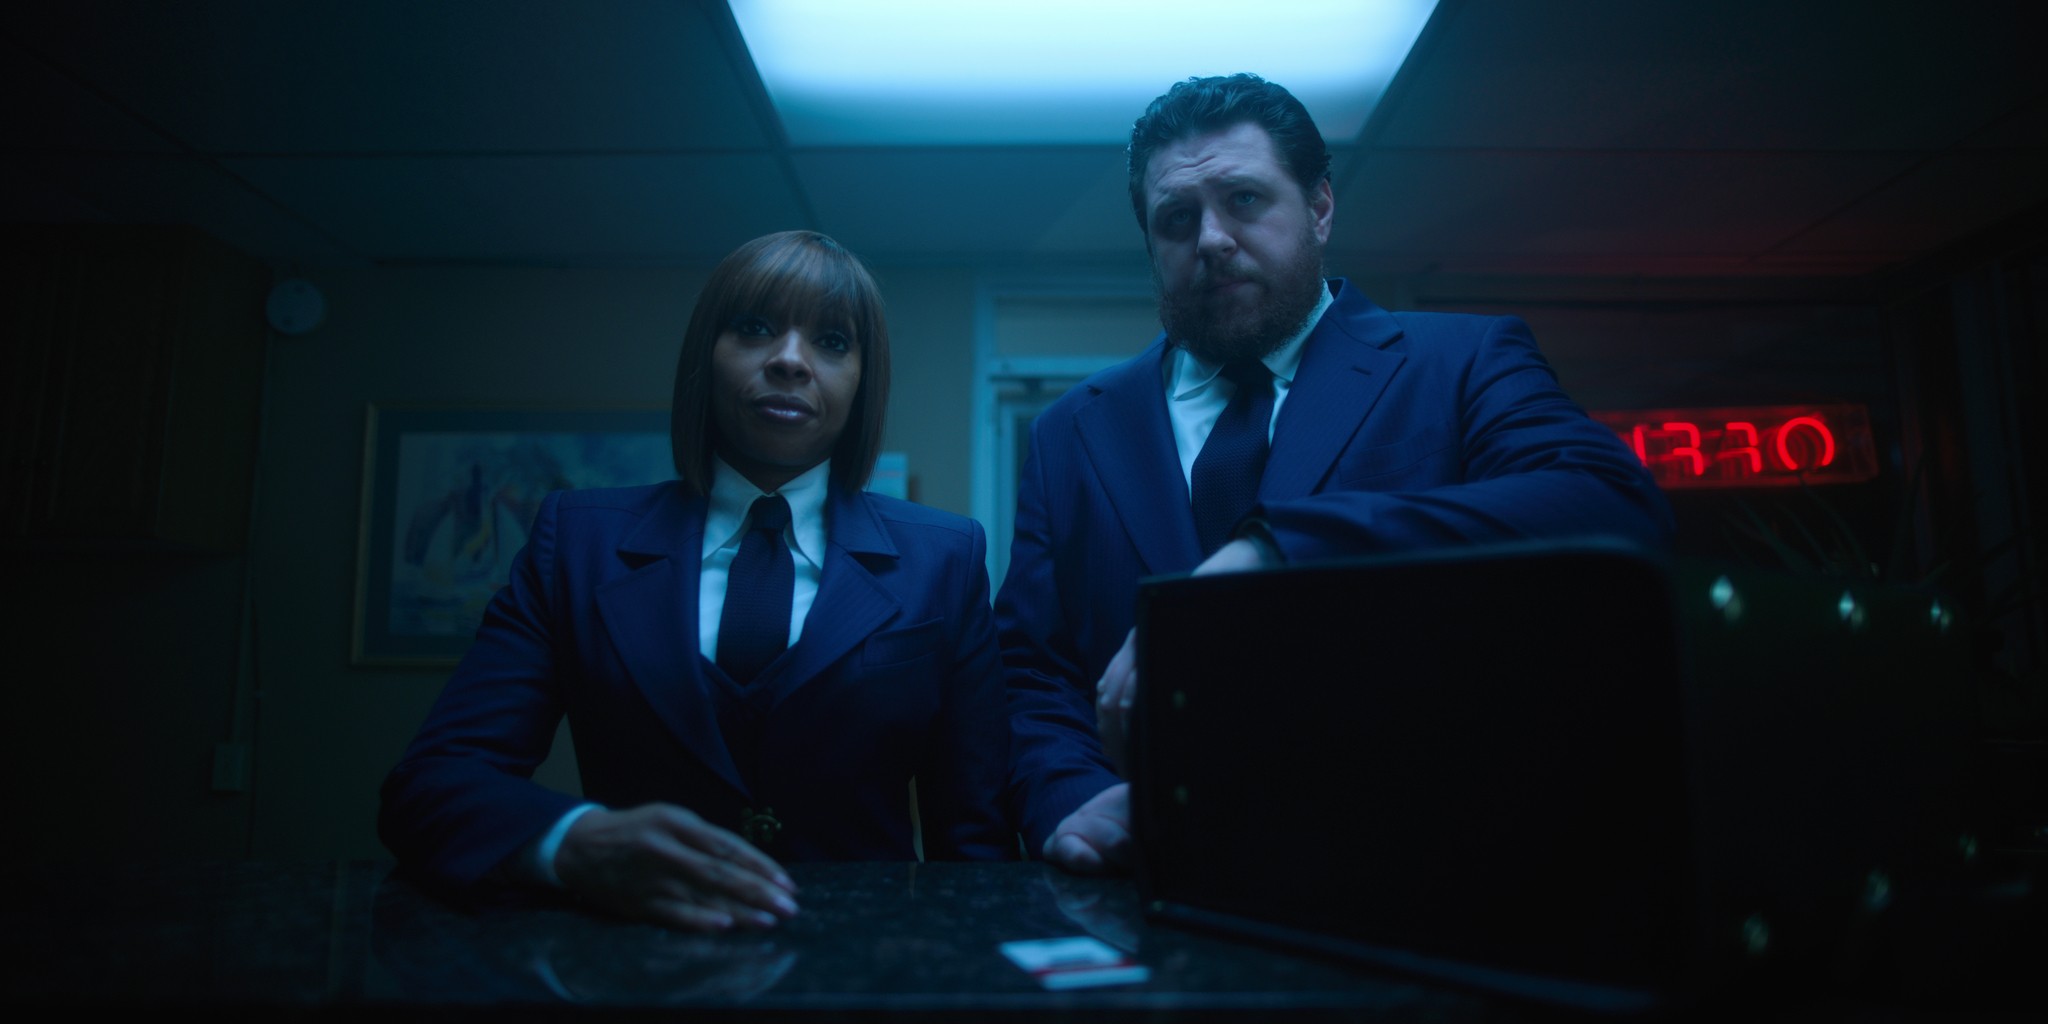 Mary J. Blige and Cameron Britton in The Umbrella Academy (2019)